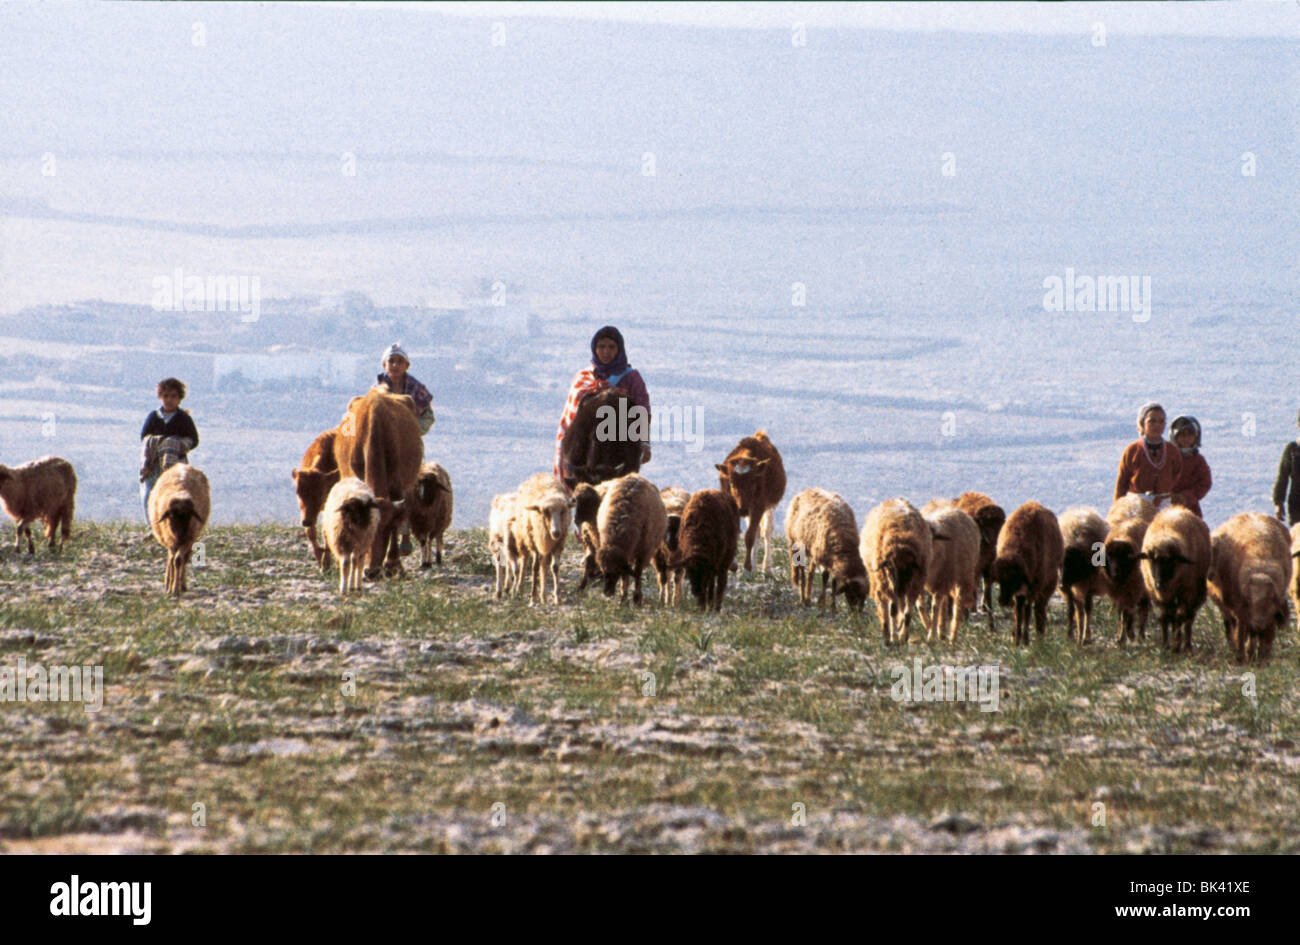 Women and children herding sheep and cattle, Morocco - Stock Image